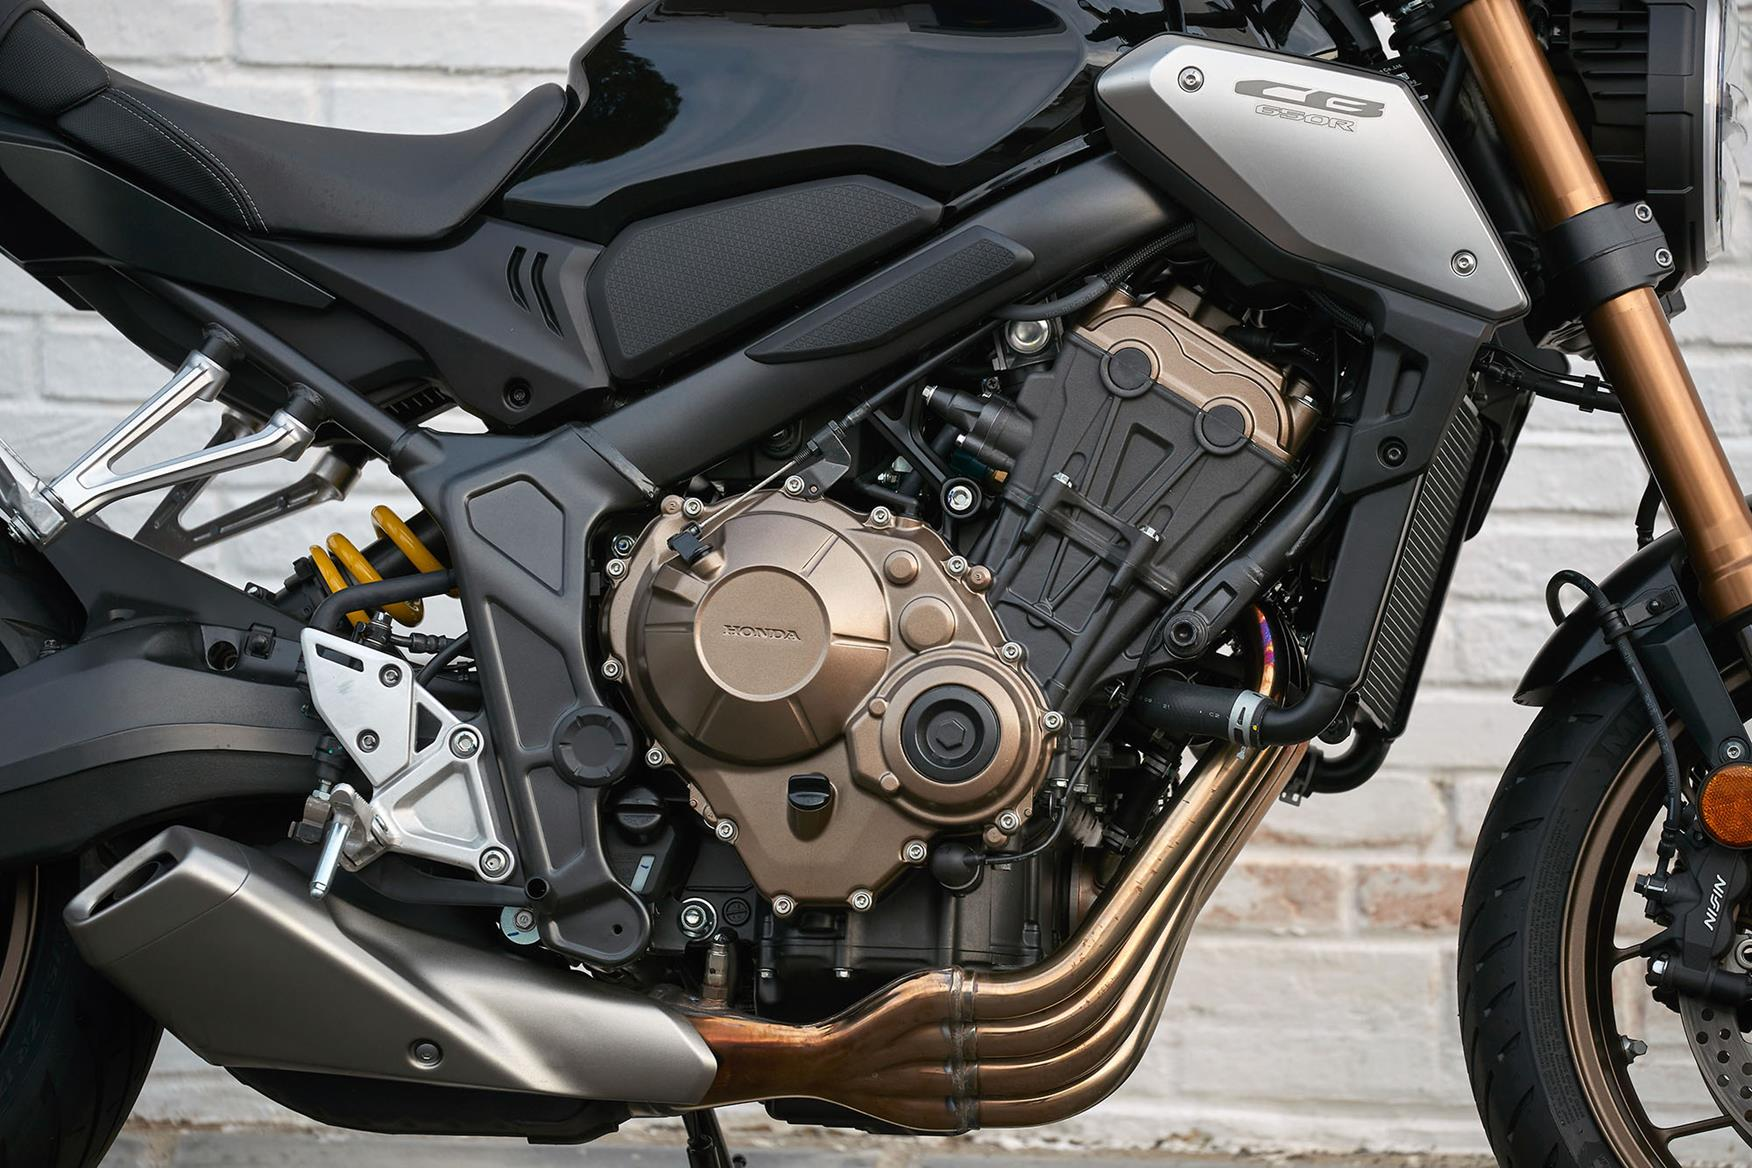 Honda CB650R engine